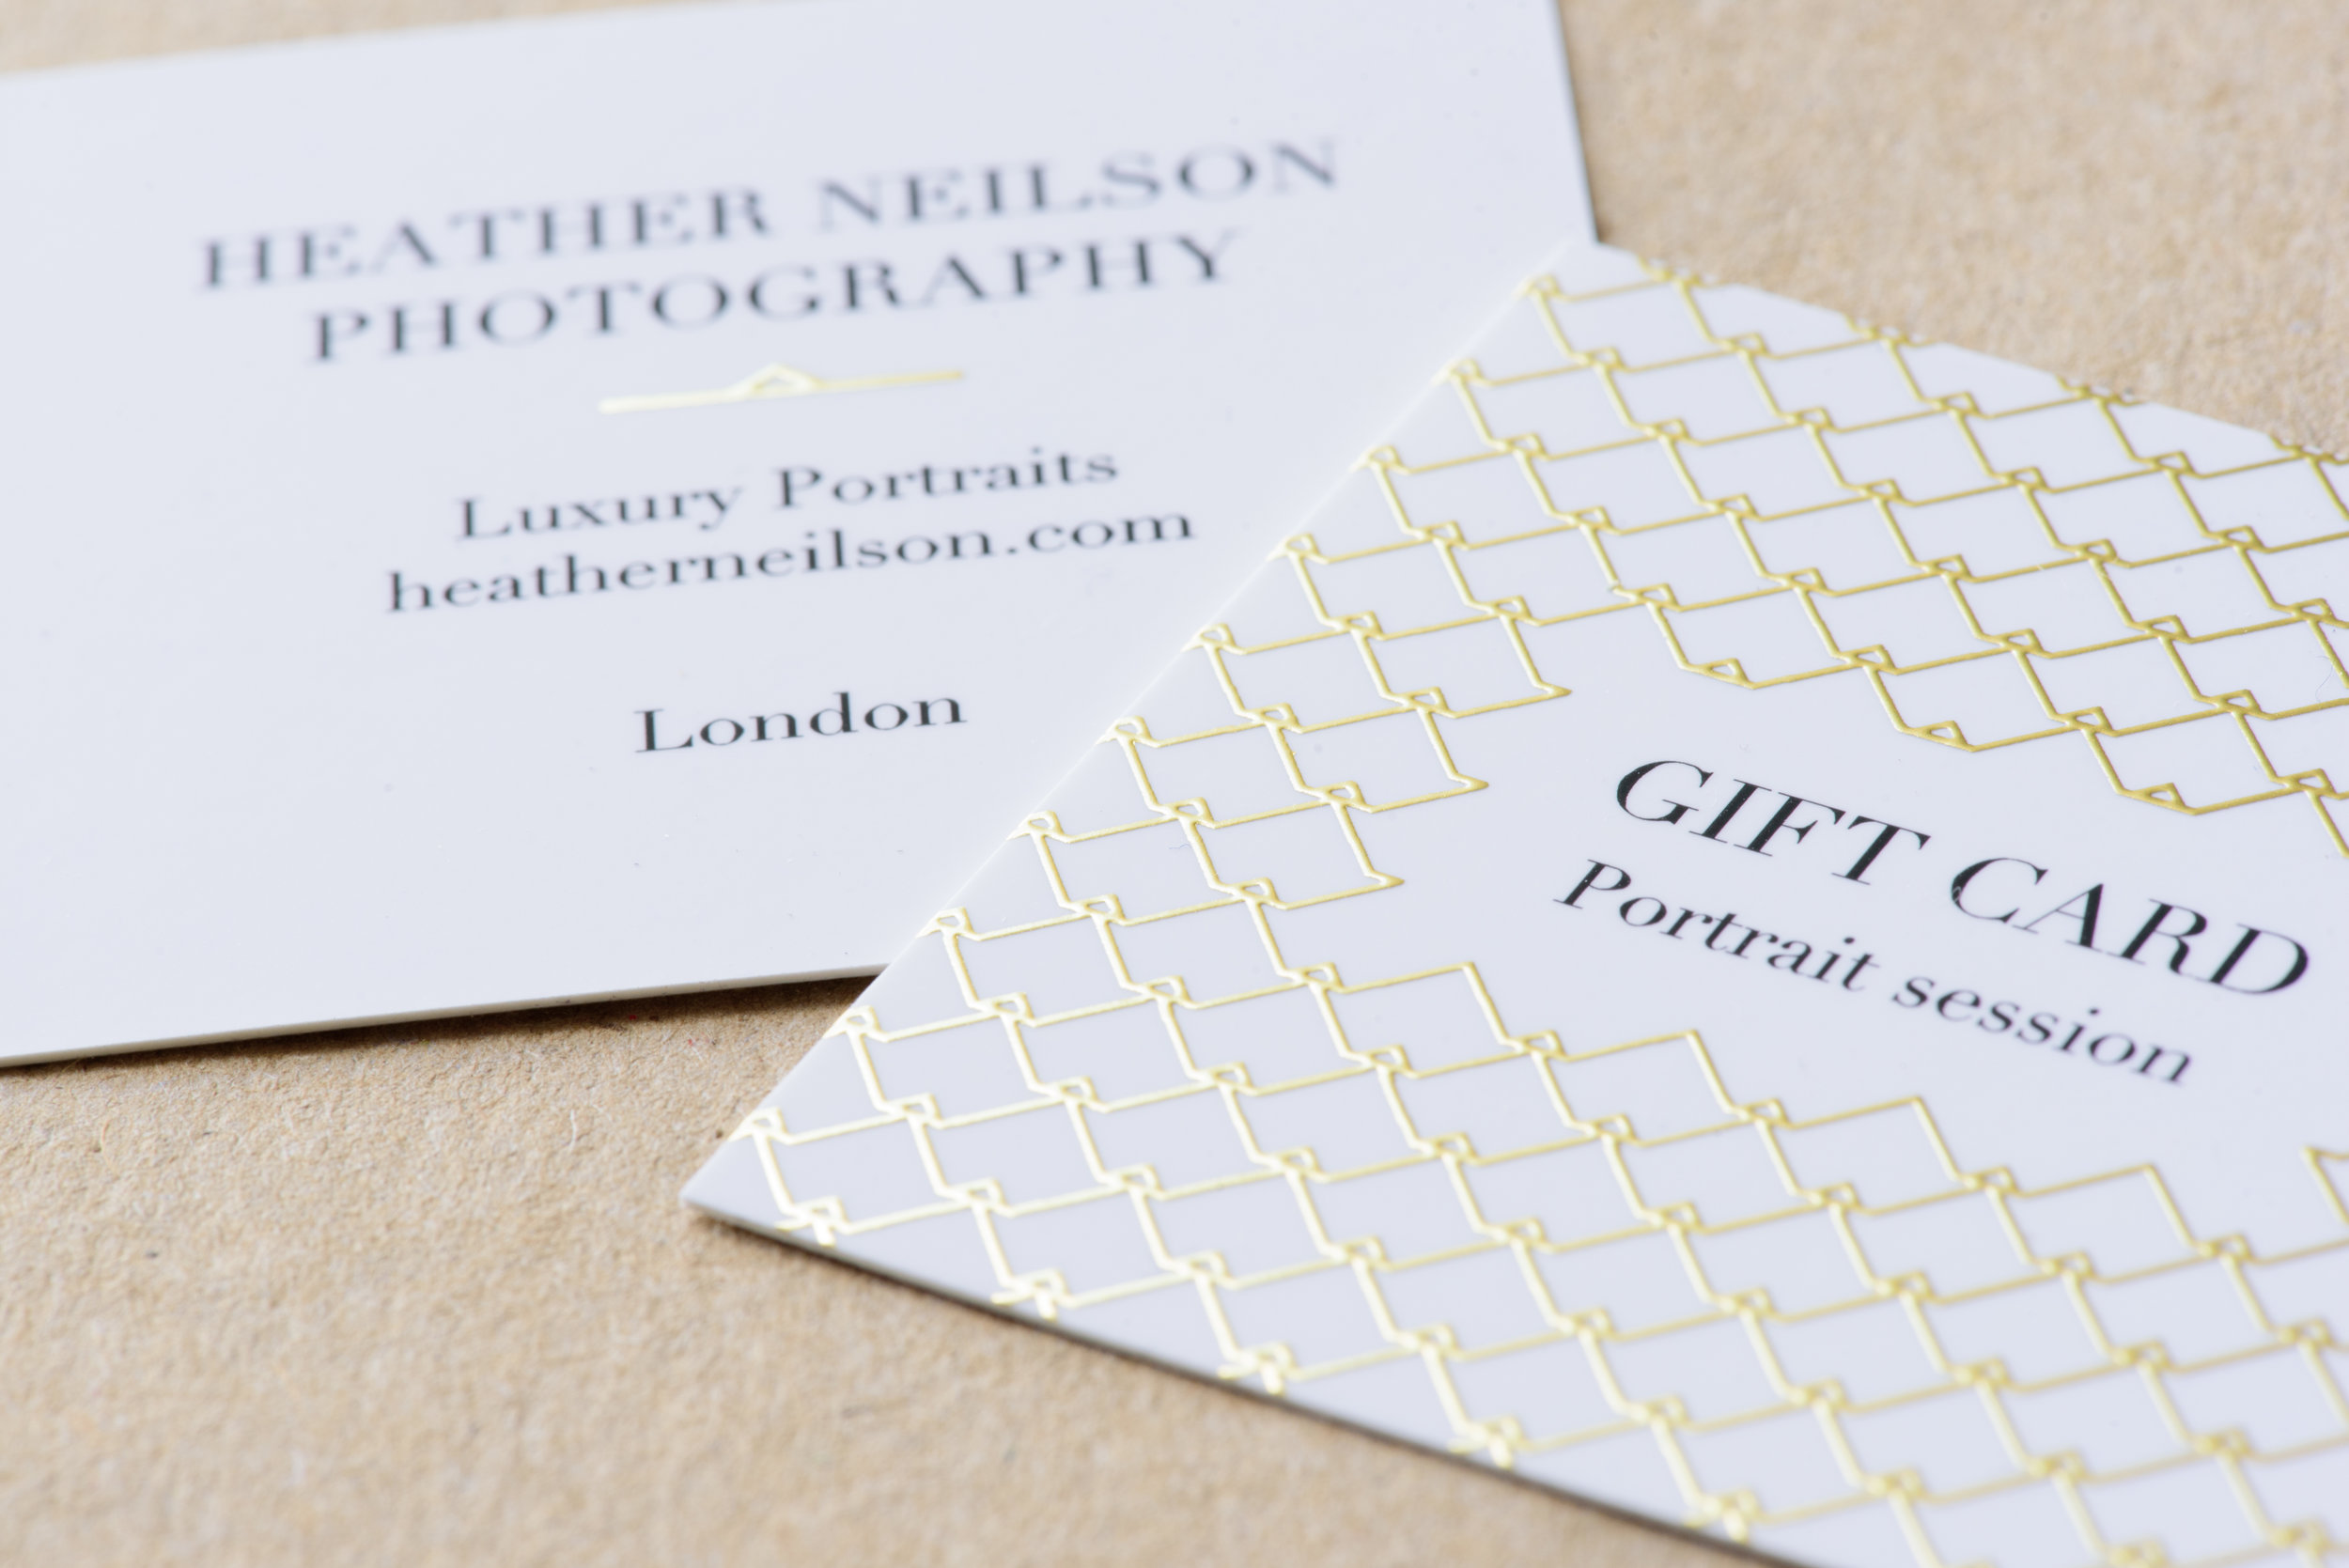 London portrait photography gift cards